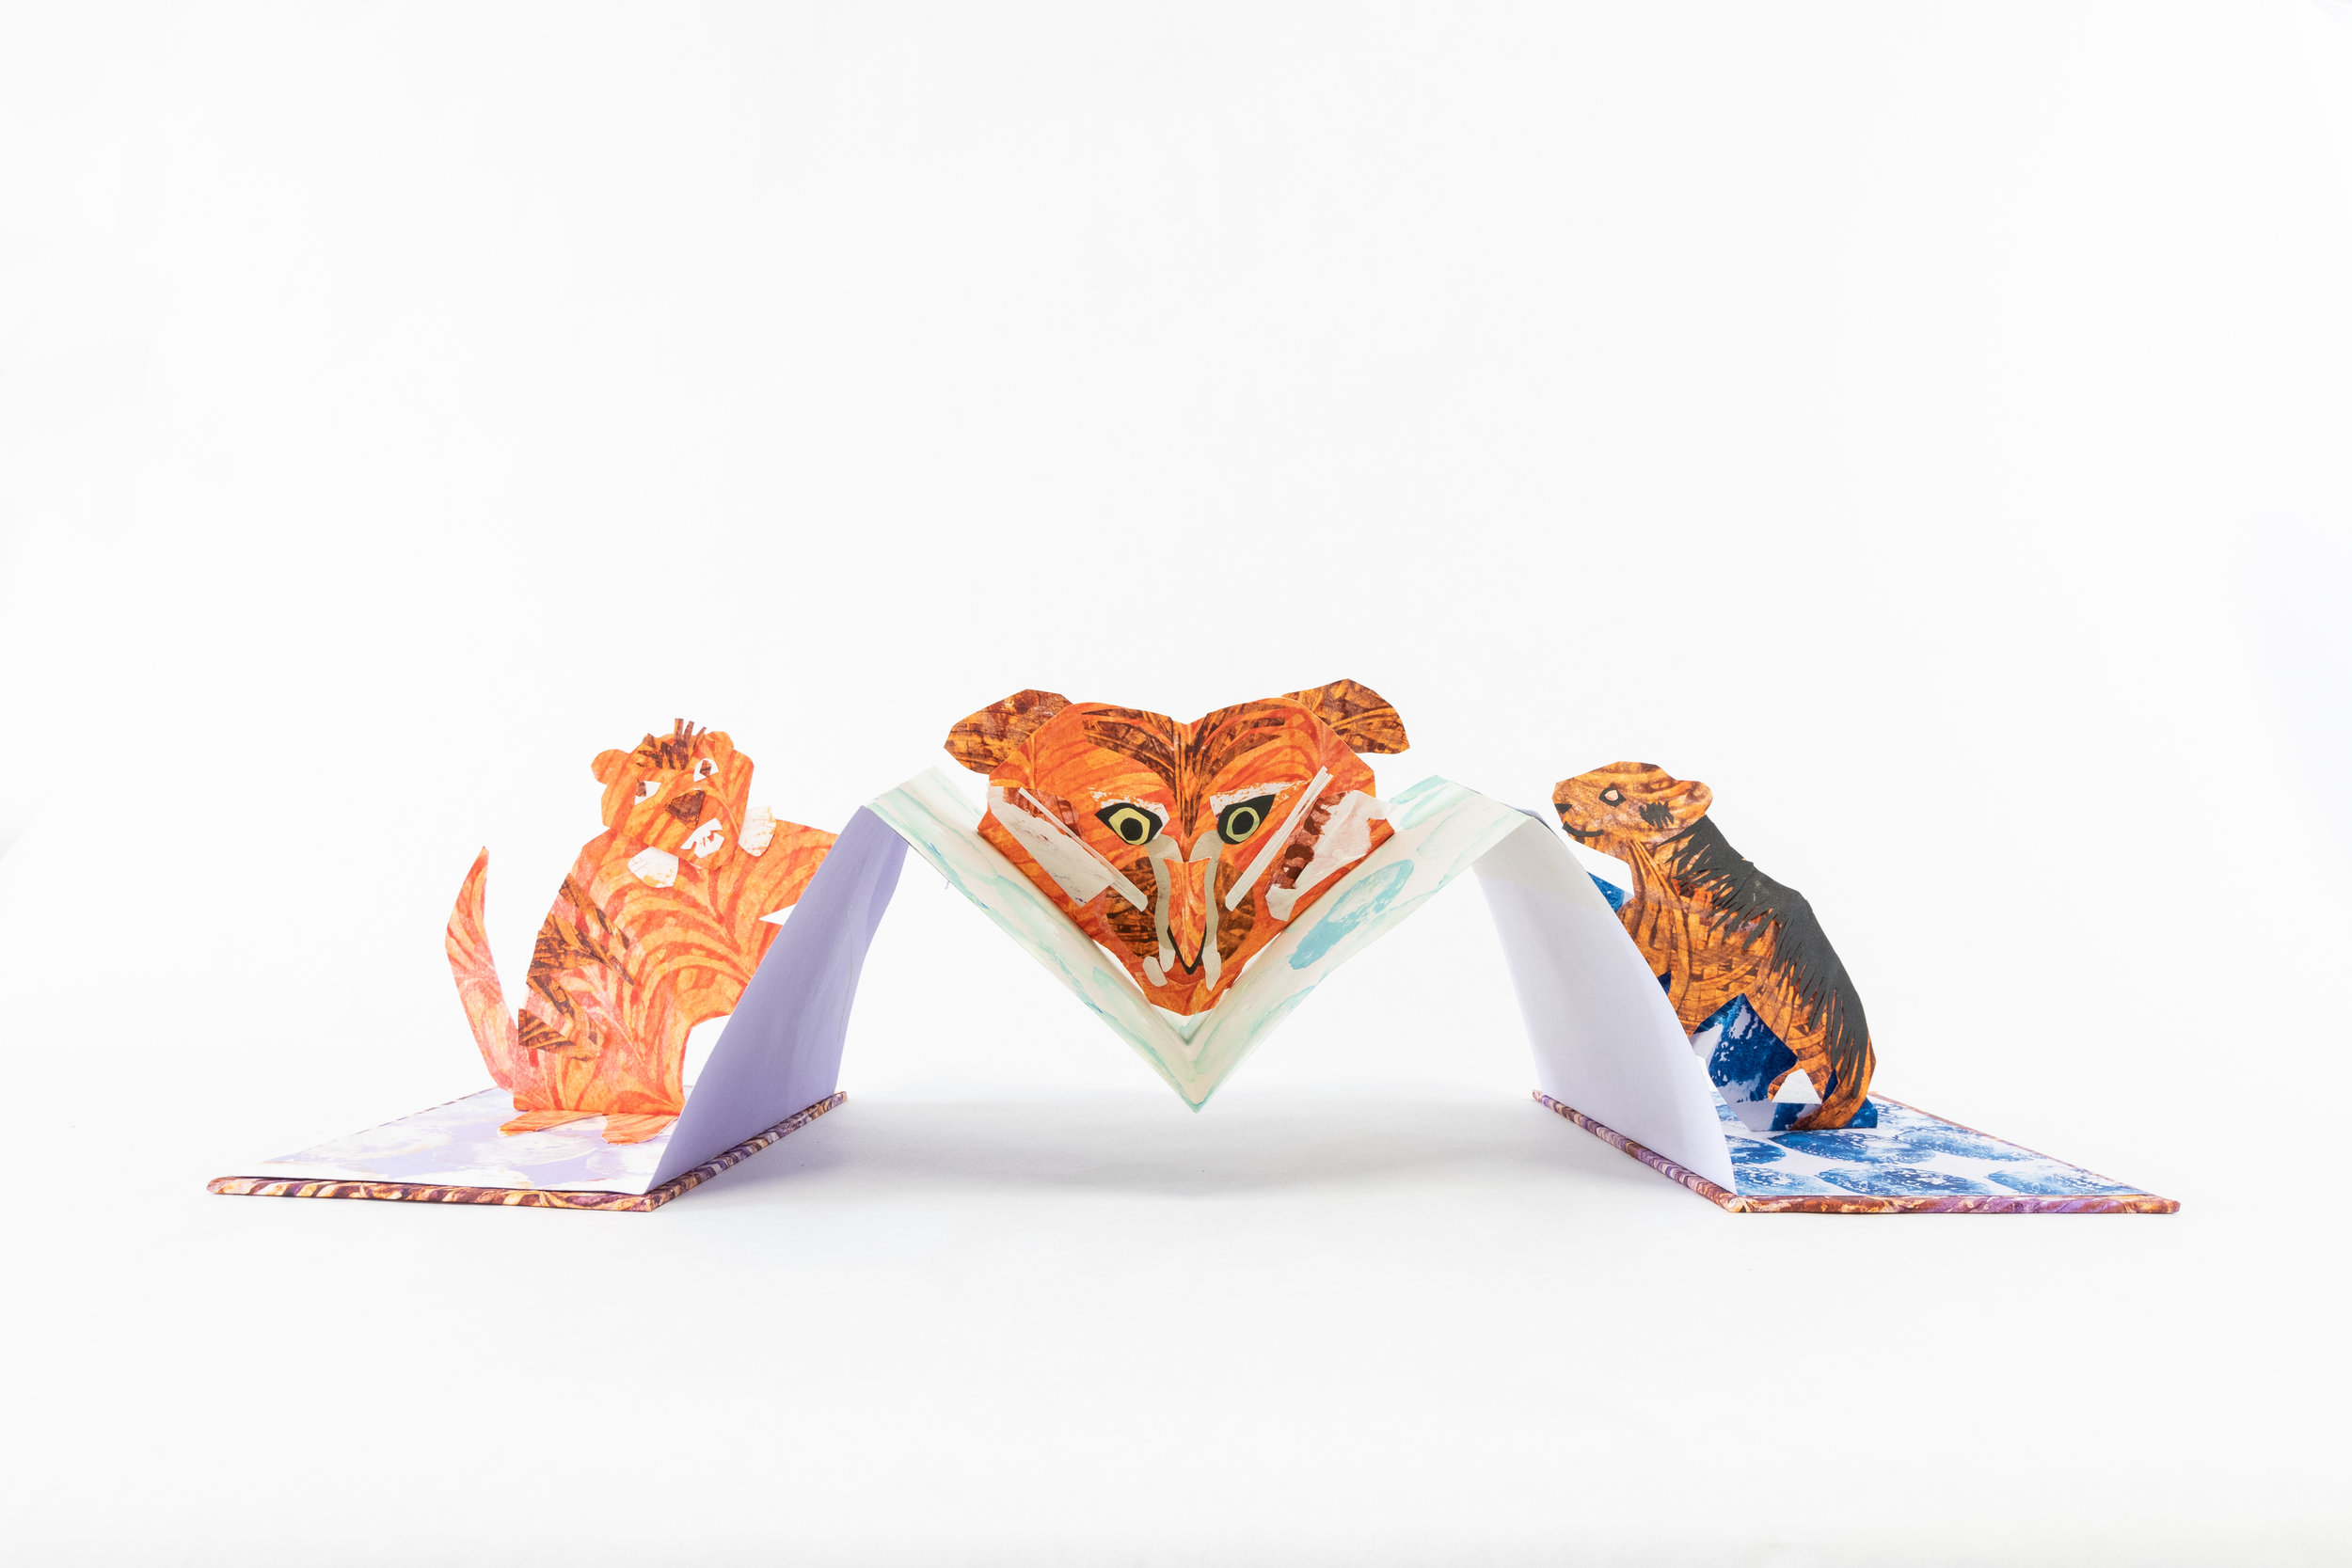 """Katie Platte, """"Dreamtigers,"""" Handmade and commercial papers with potato prints, paste paint and letterpress, 2019, $100, Kalamazoo, MI"""